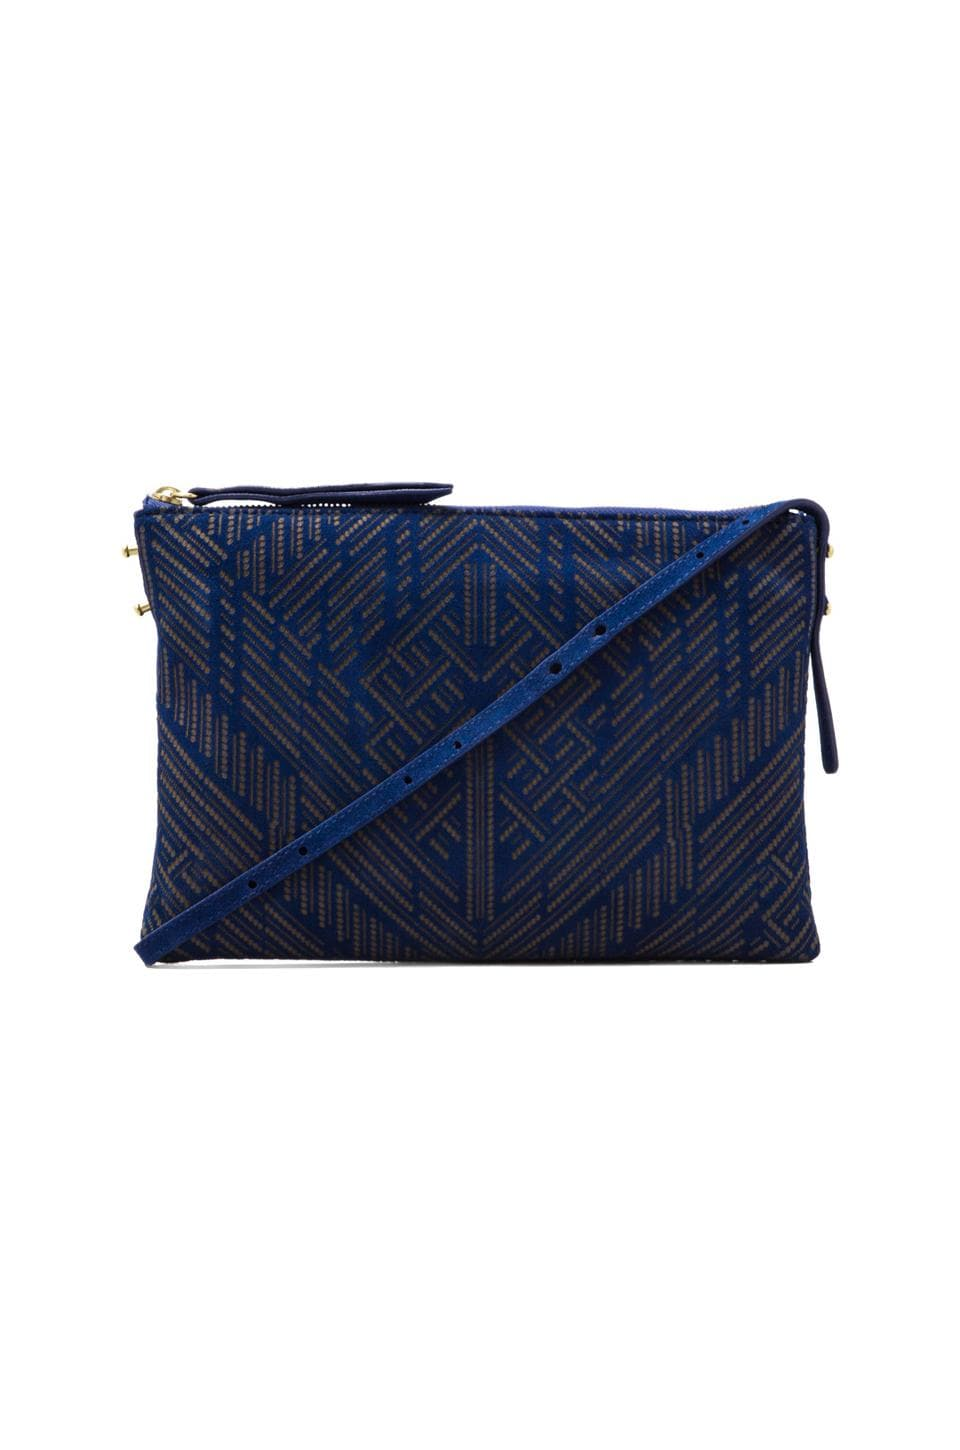 Twelfth Street By Cynthia Vincent Cynthia Vincent Somer Crossbody Bag in Indigo